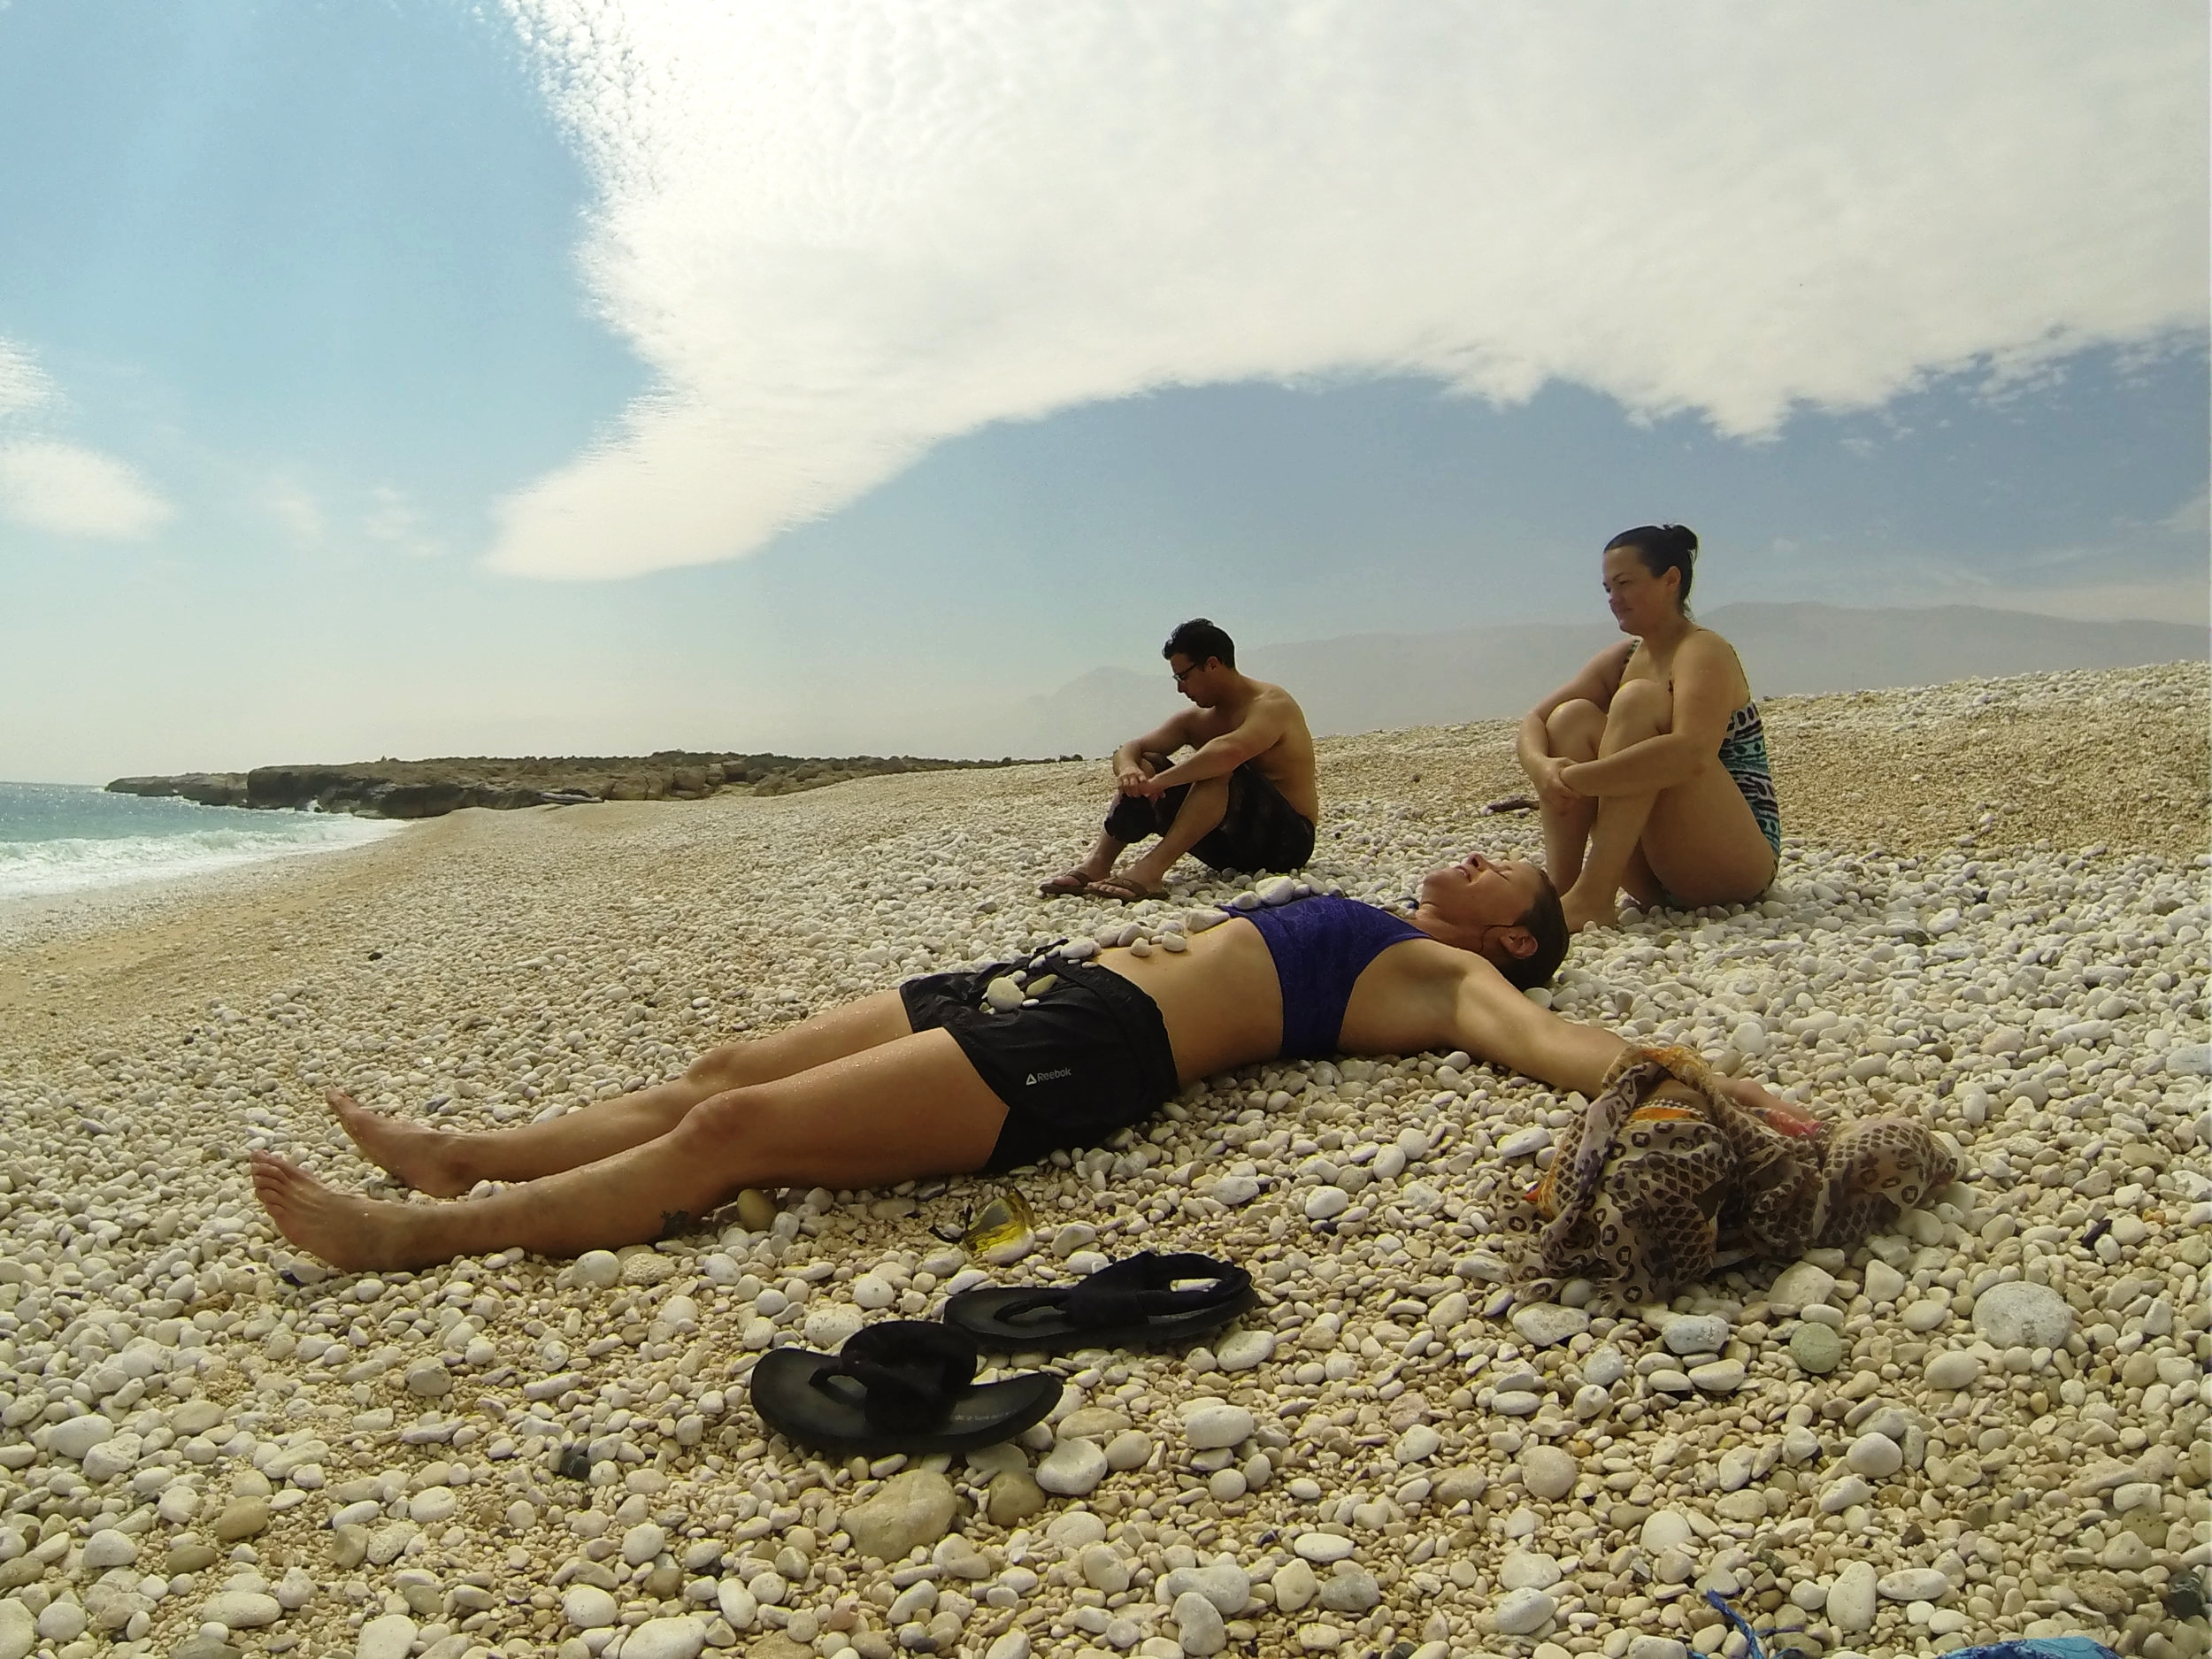 Drying off from an impromptu swim in the Gulf of Oman